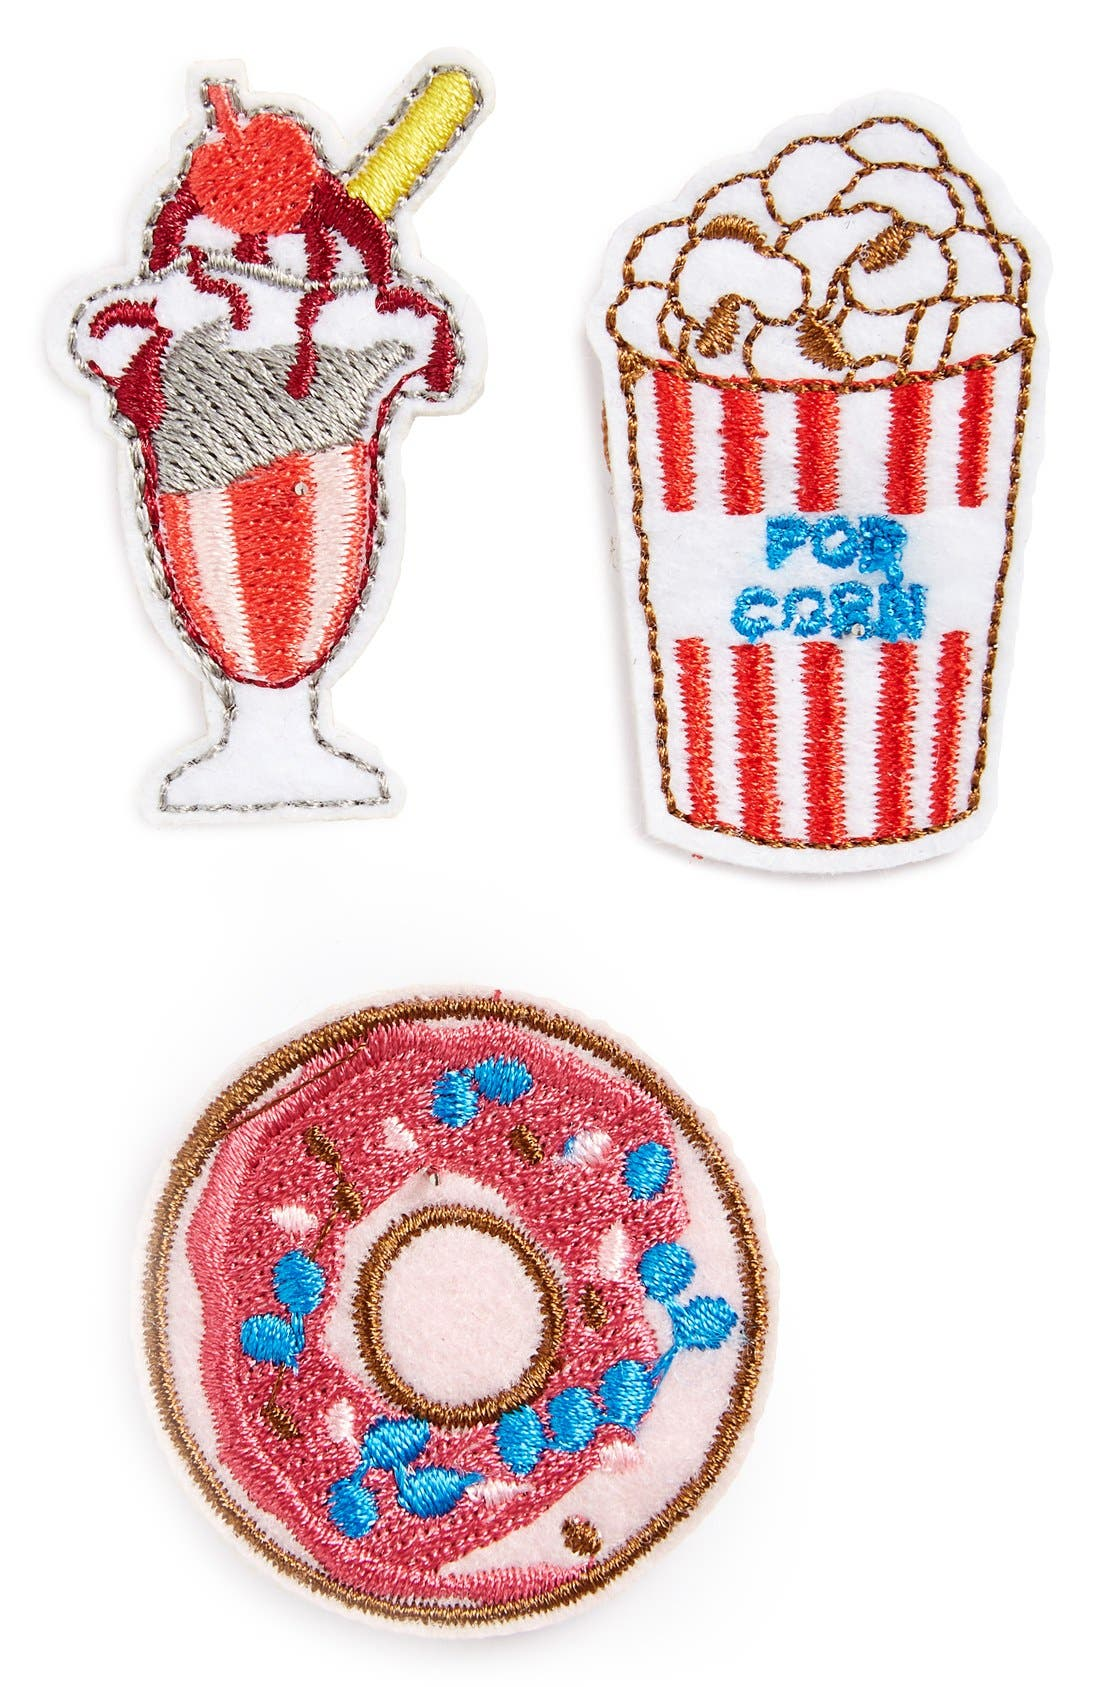 Alternate Image 1 Selected - Topshop Mixed Treats Brooches (Set of 3)